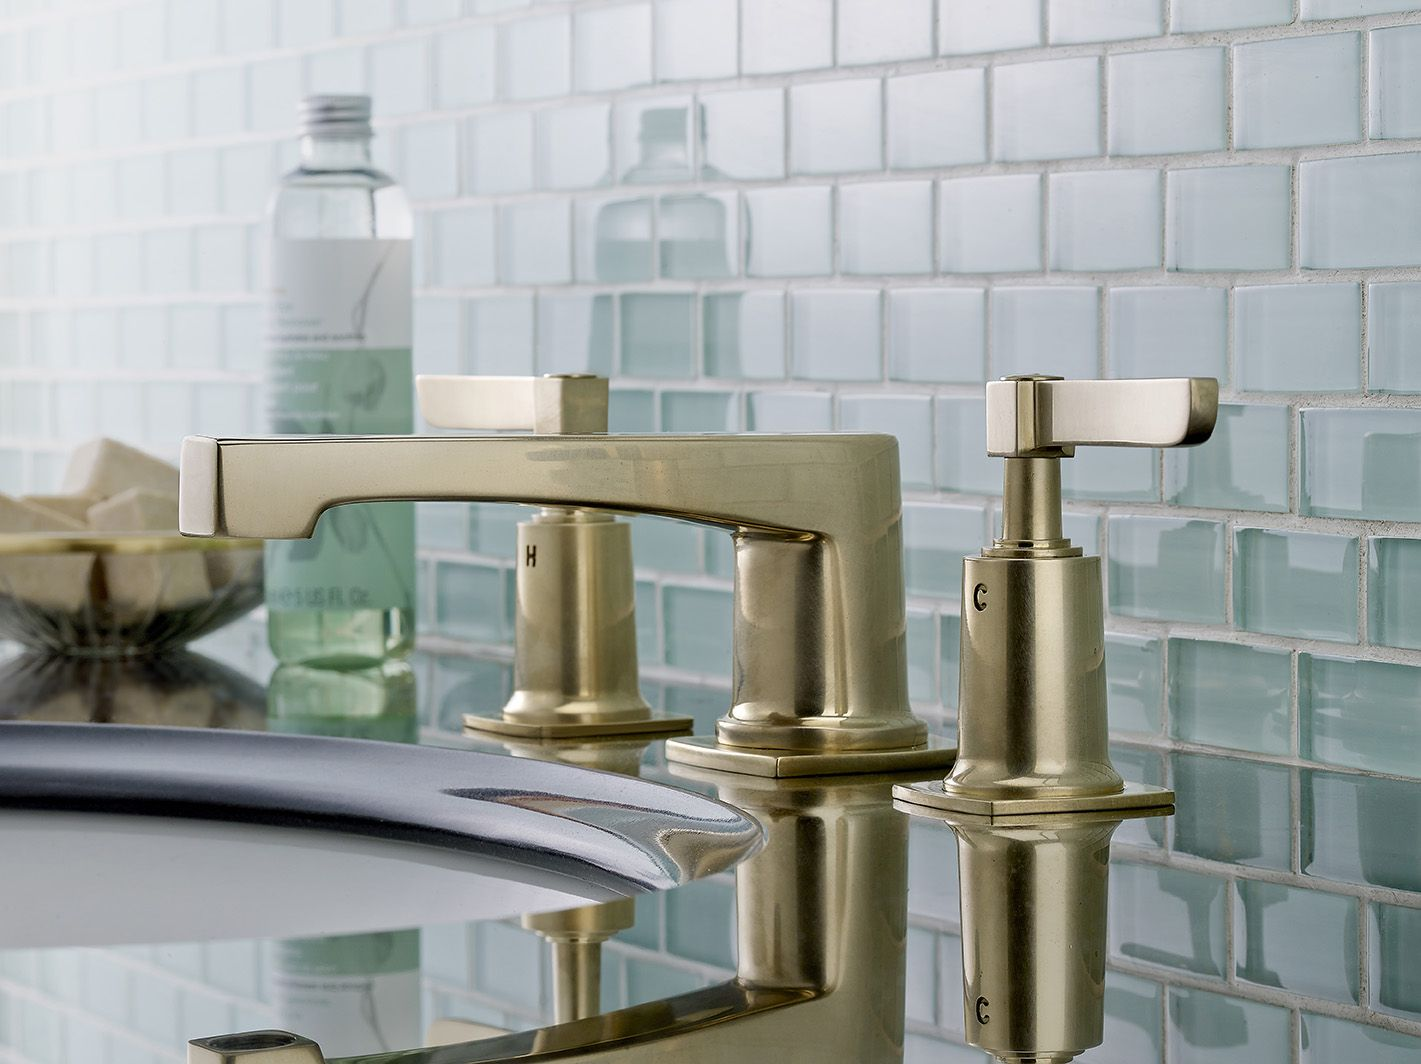 Watermark bathroom accessories - H Line Faucet By Watermark Designs